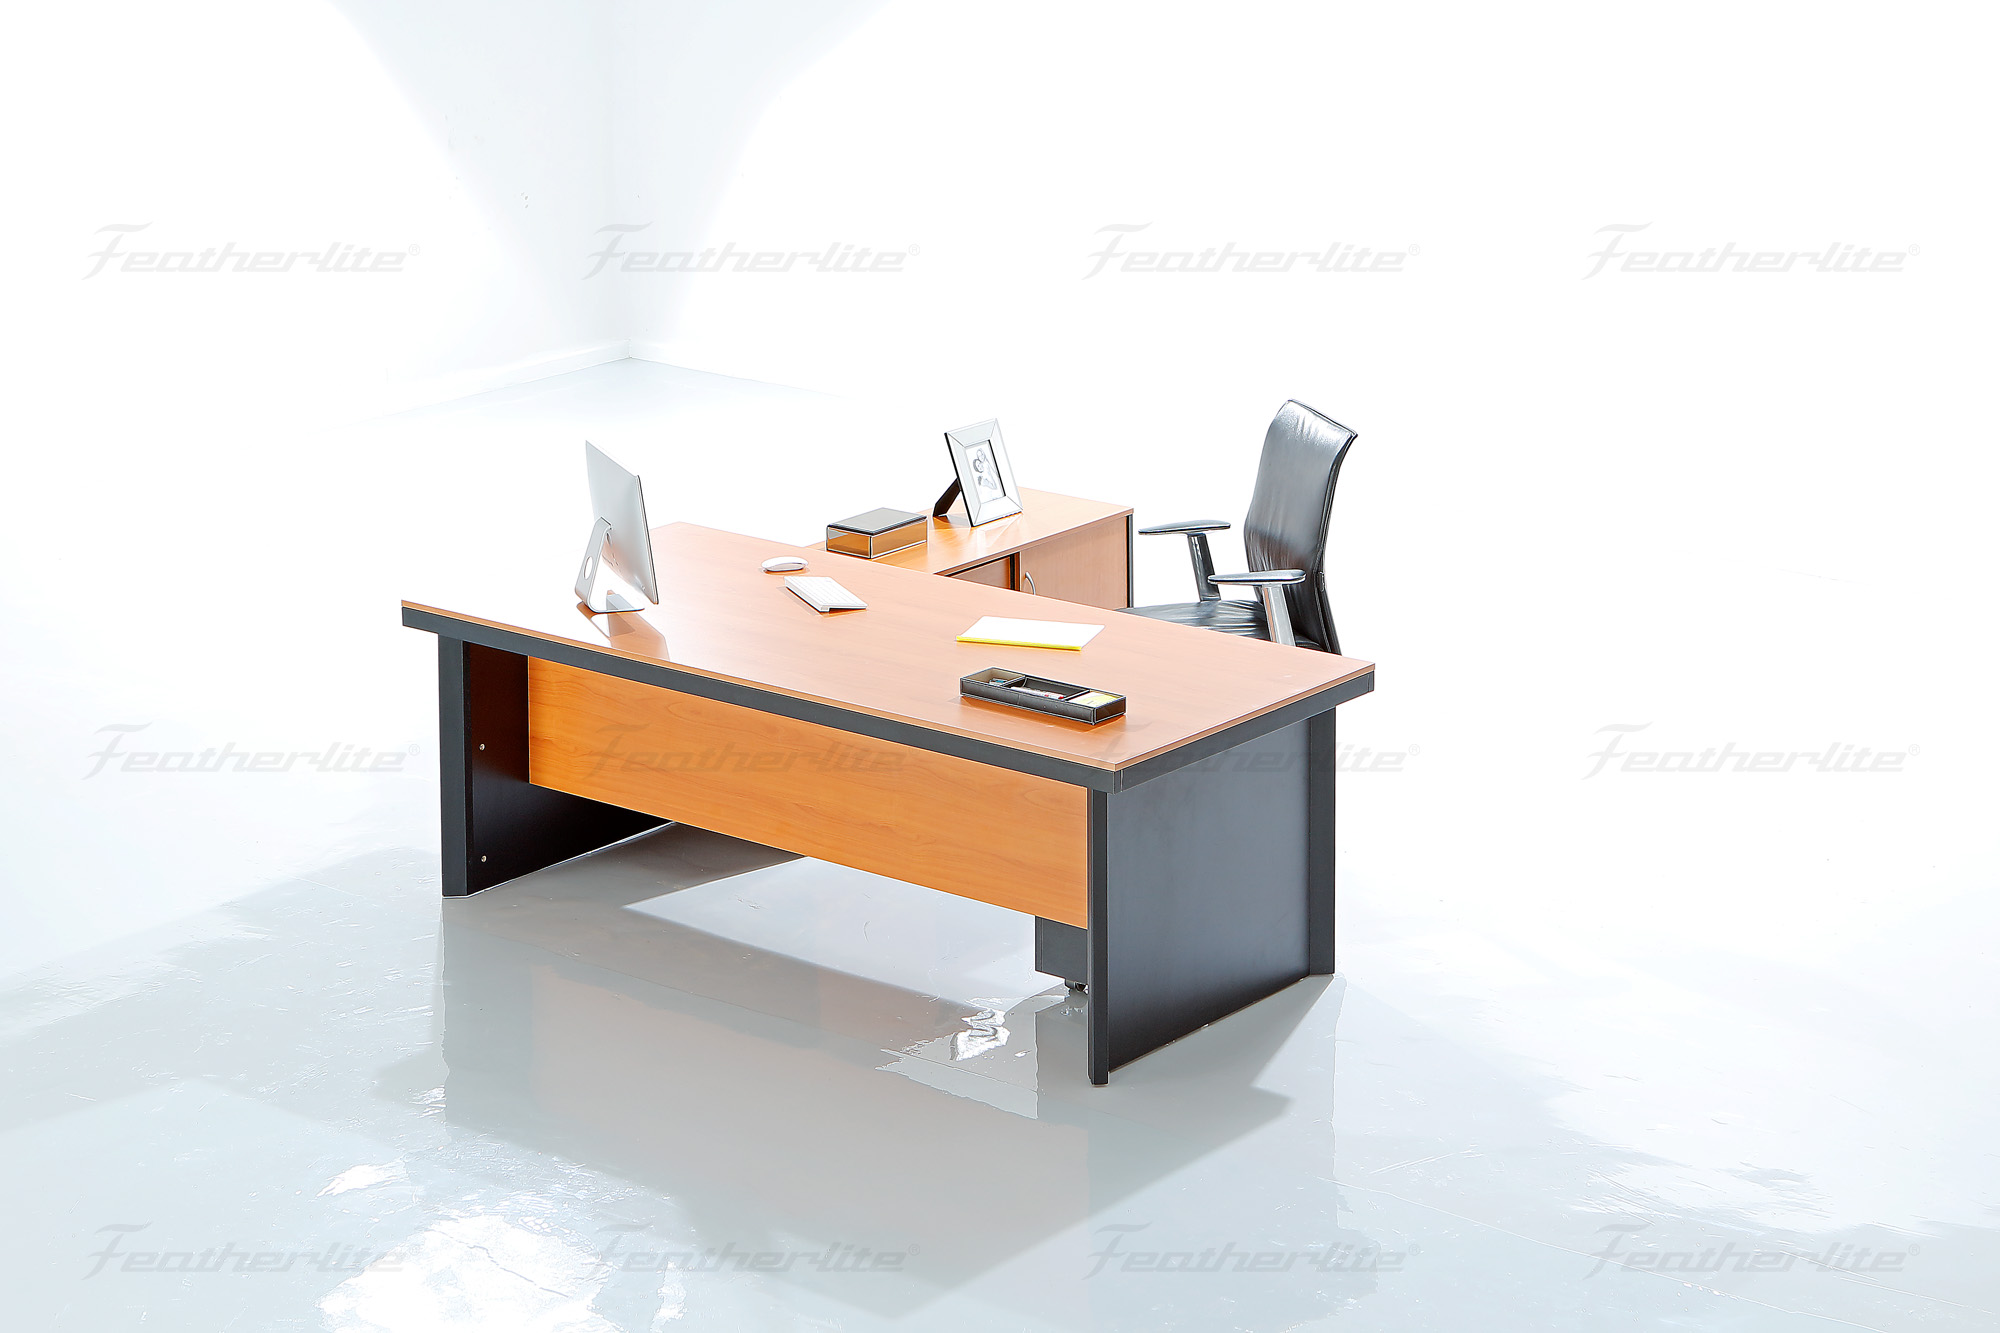 Executive Office Tables, Conference & Meeting Tables, Office Desks - Featherlite